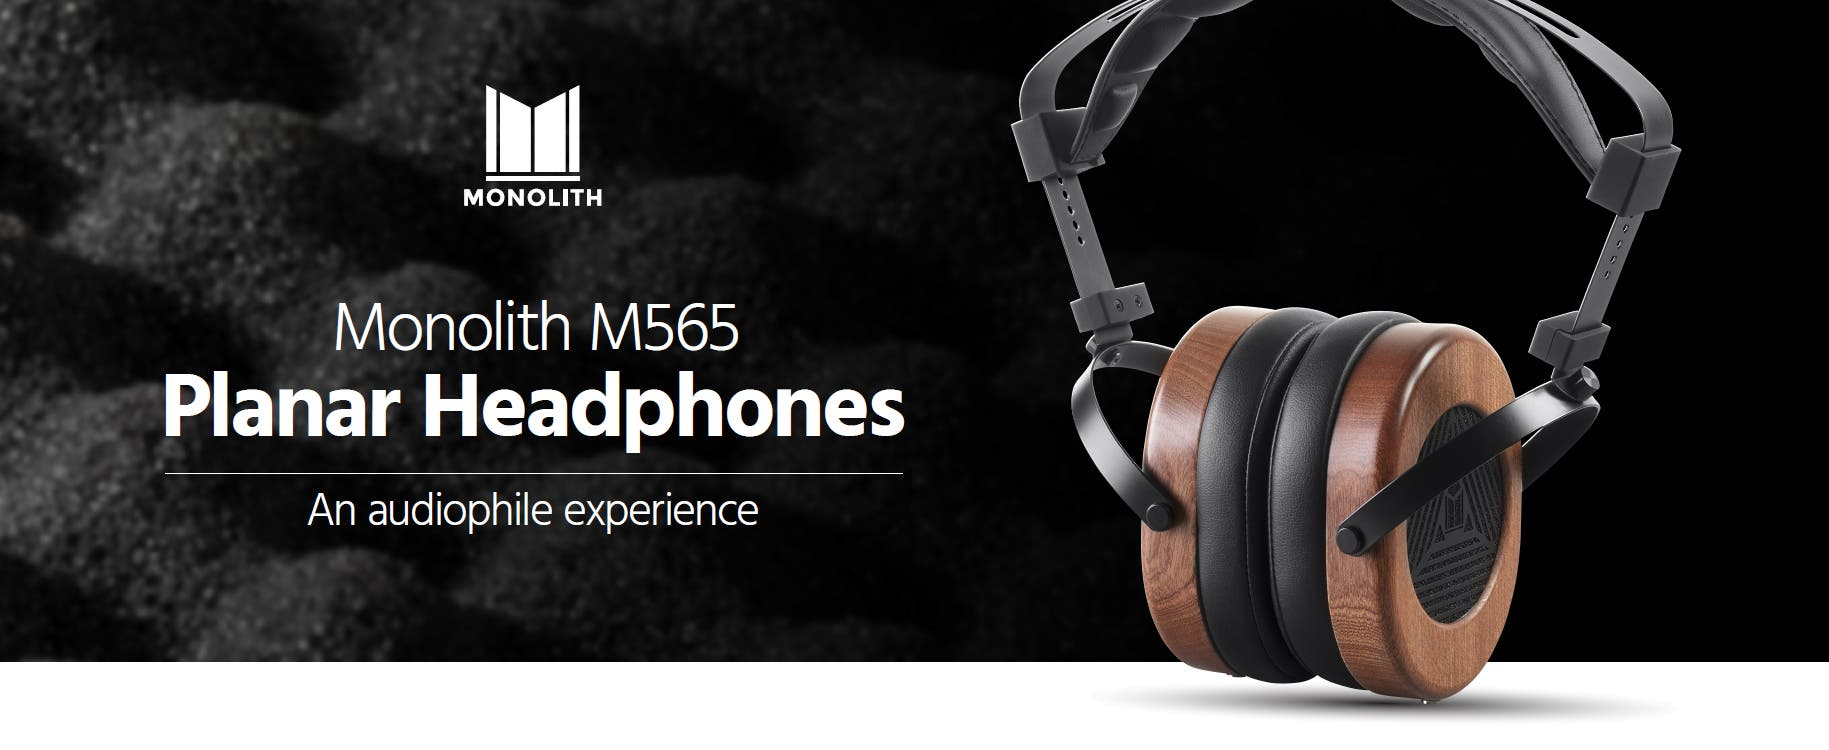 M565 Planar Headphones